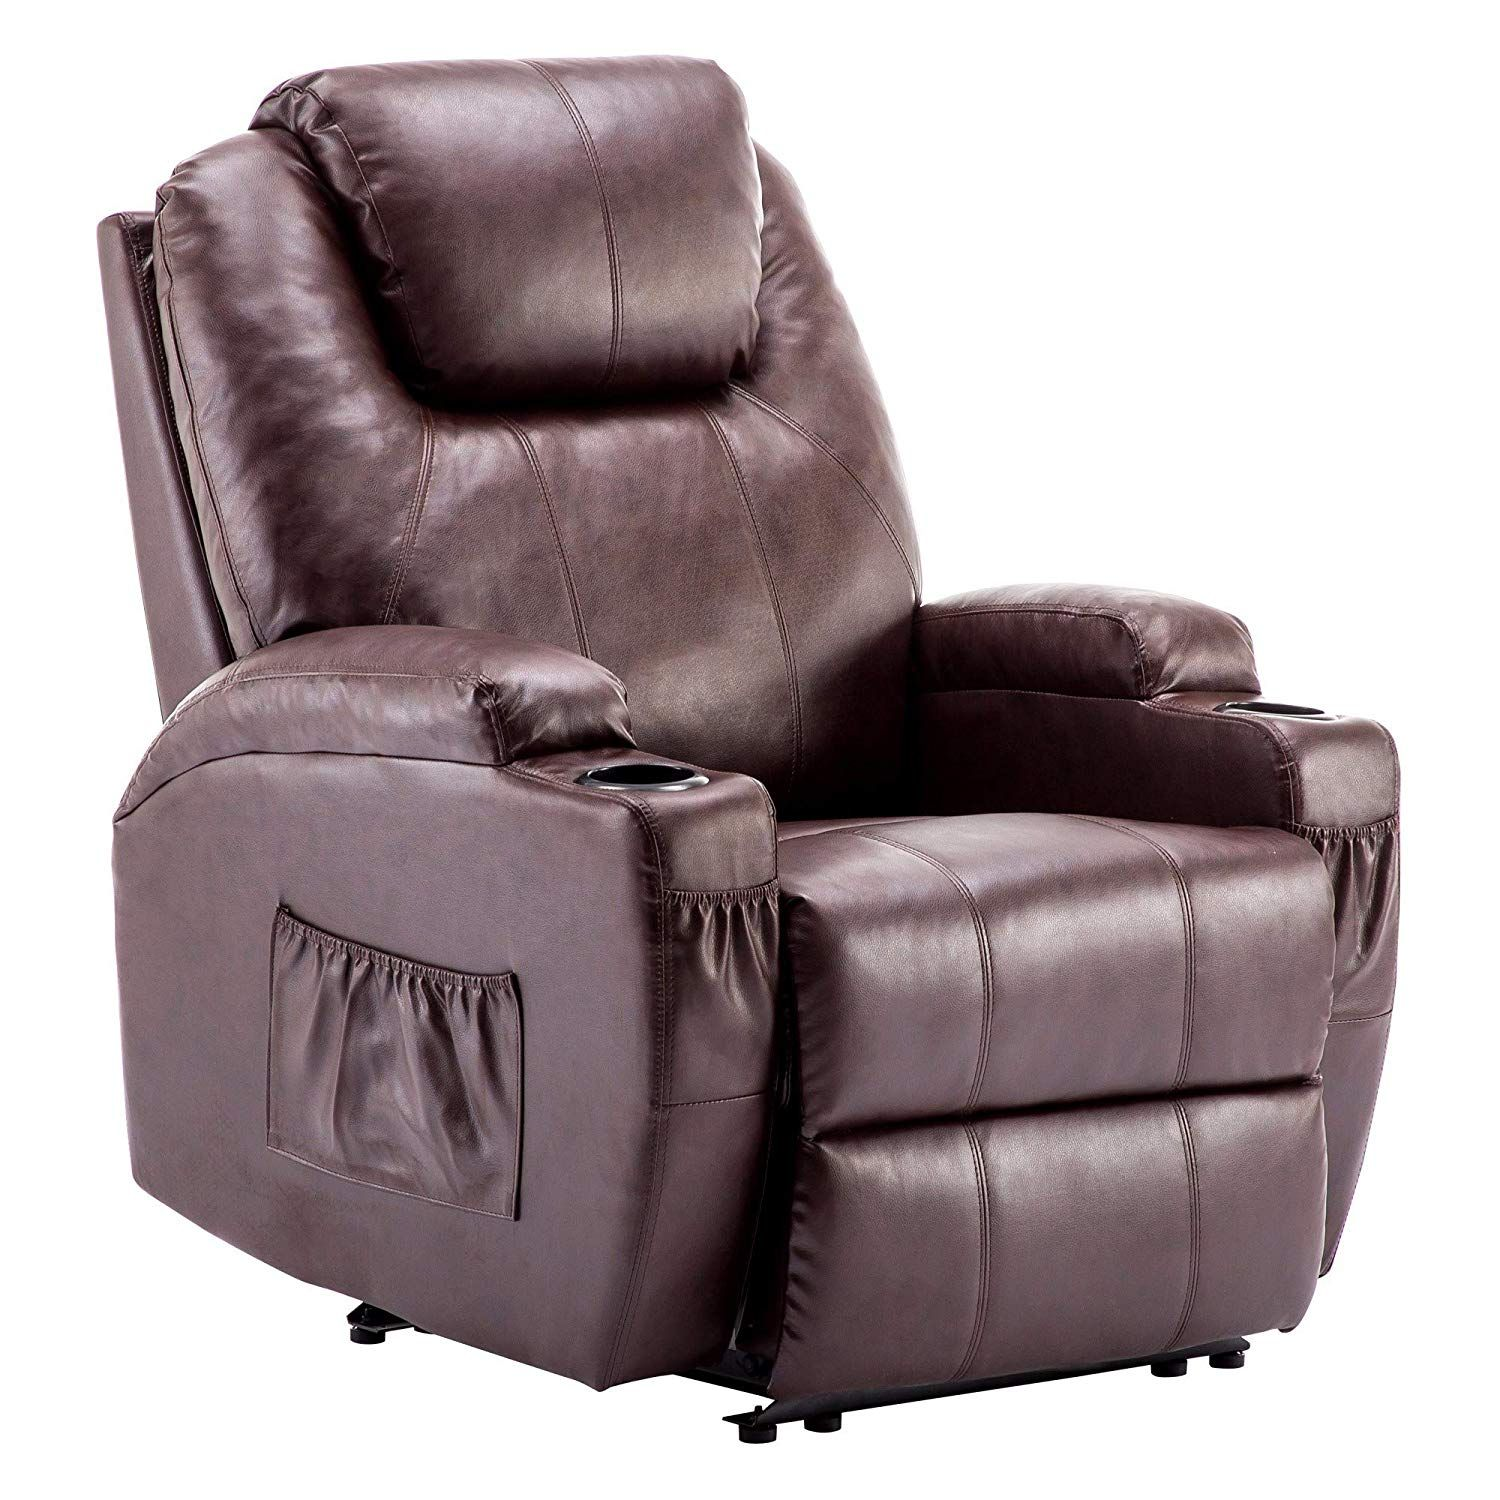 Sensational Best Recliners The Top 10 Reclining Chairs Of 2019 Caraccident5 Cool Chair Designs And Ideas Caraccident5Info